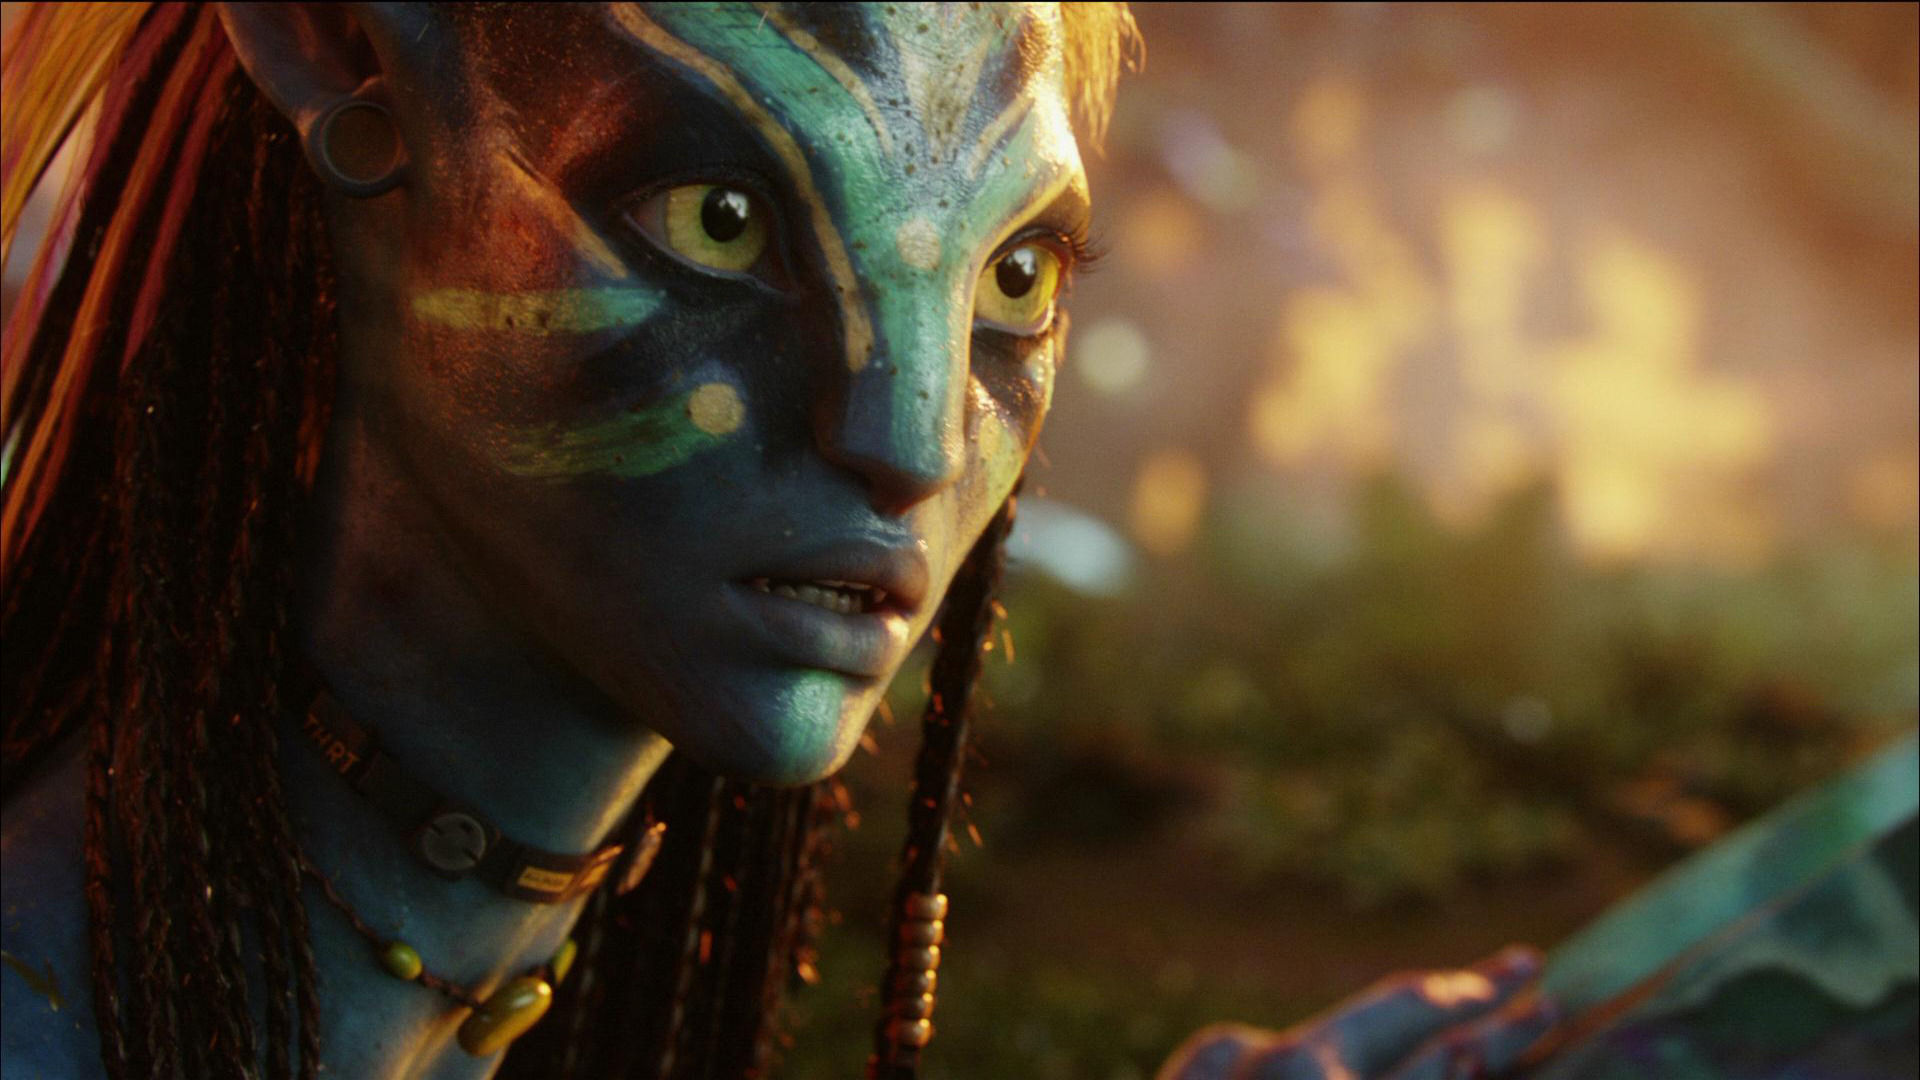 Avatar blurred background Movie HD Wallpaper